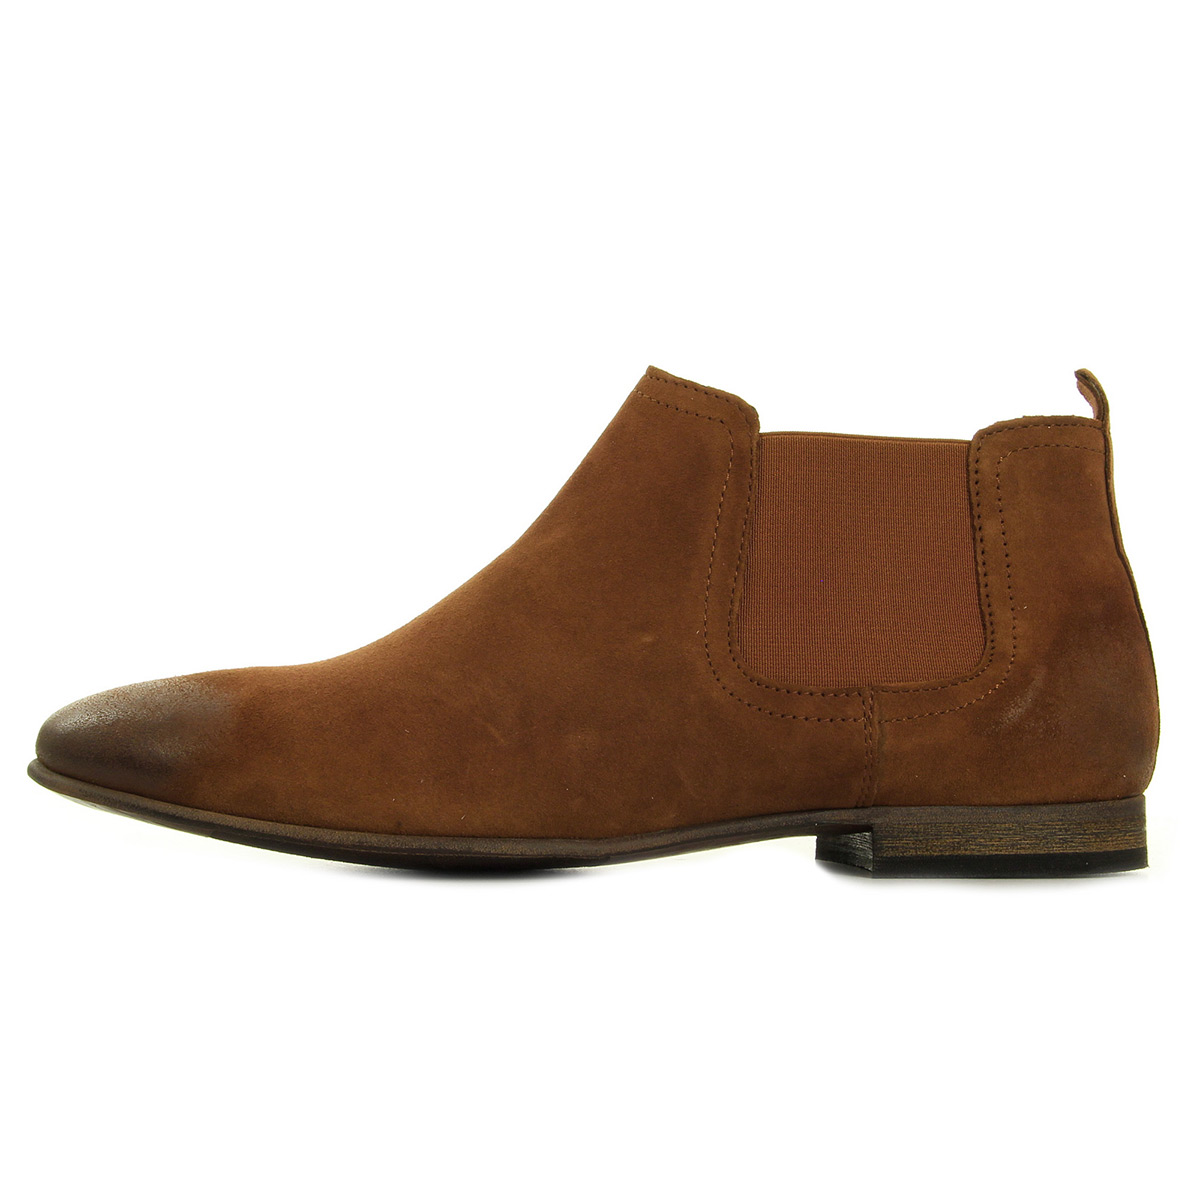 Kickers Gazette Camel 54849050114, Bottines femme